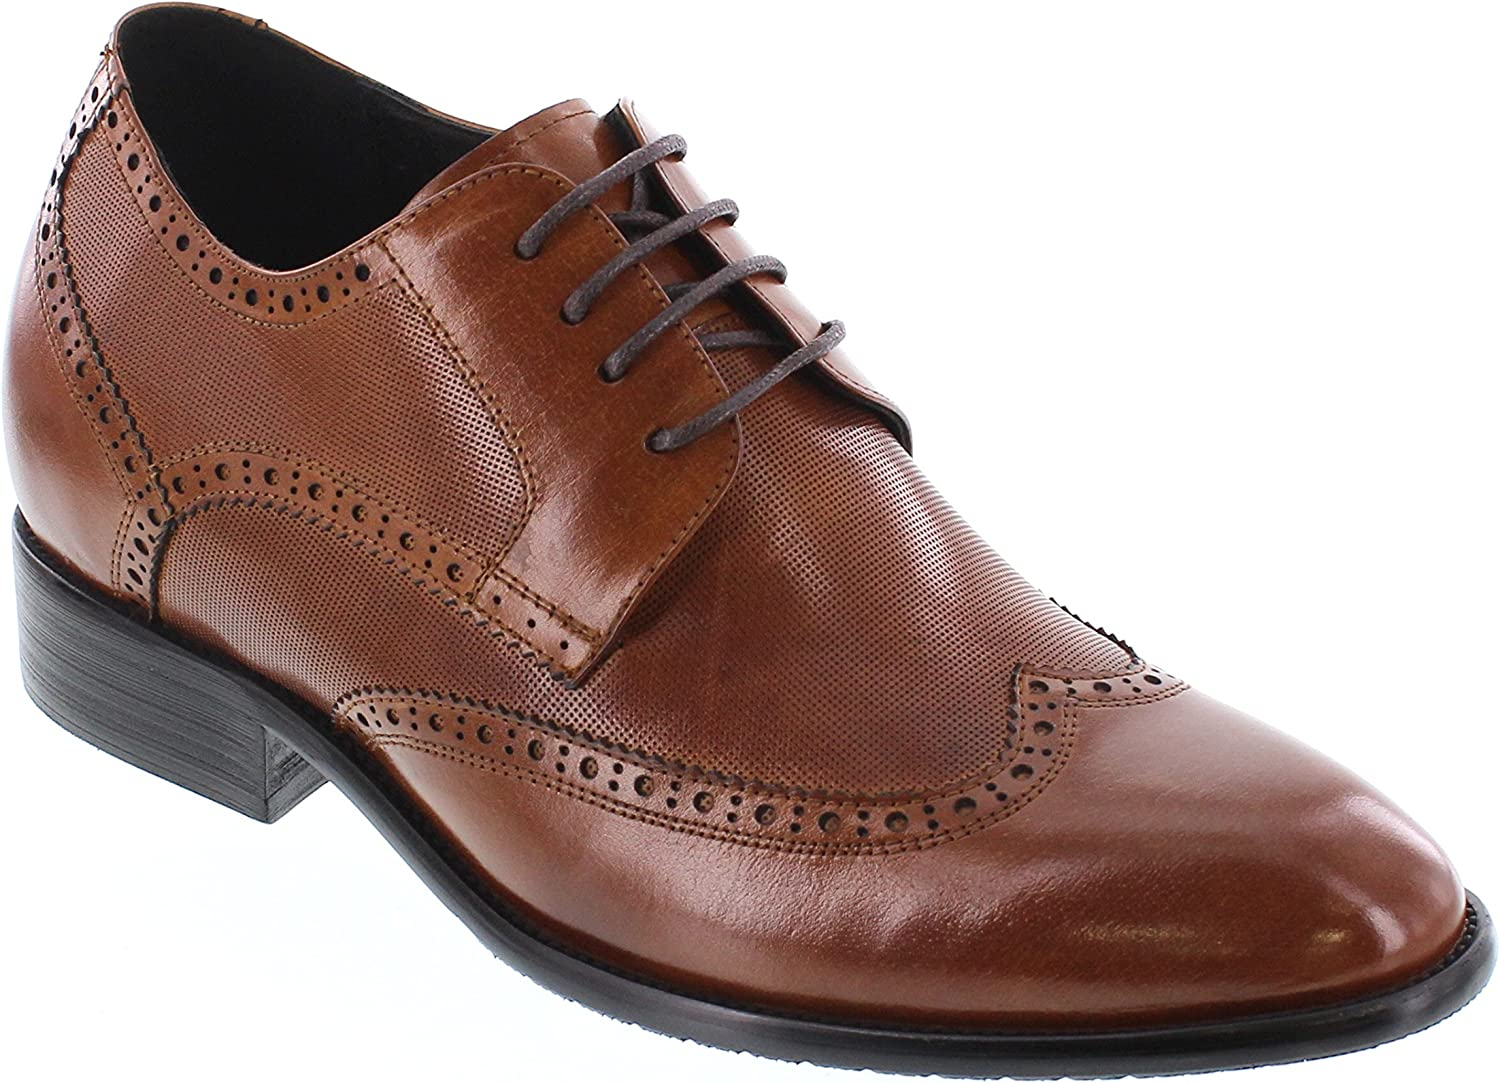 CALTO Men's Invisible Height Increasing Elevator Shoes - Antique Brown Premium Leather Wing-tip Lace-up Formal Oxfords - 2.8 Inches Taller - Y1005